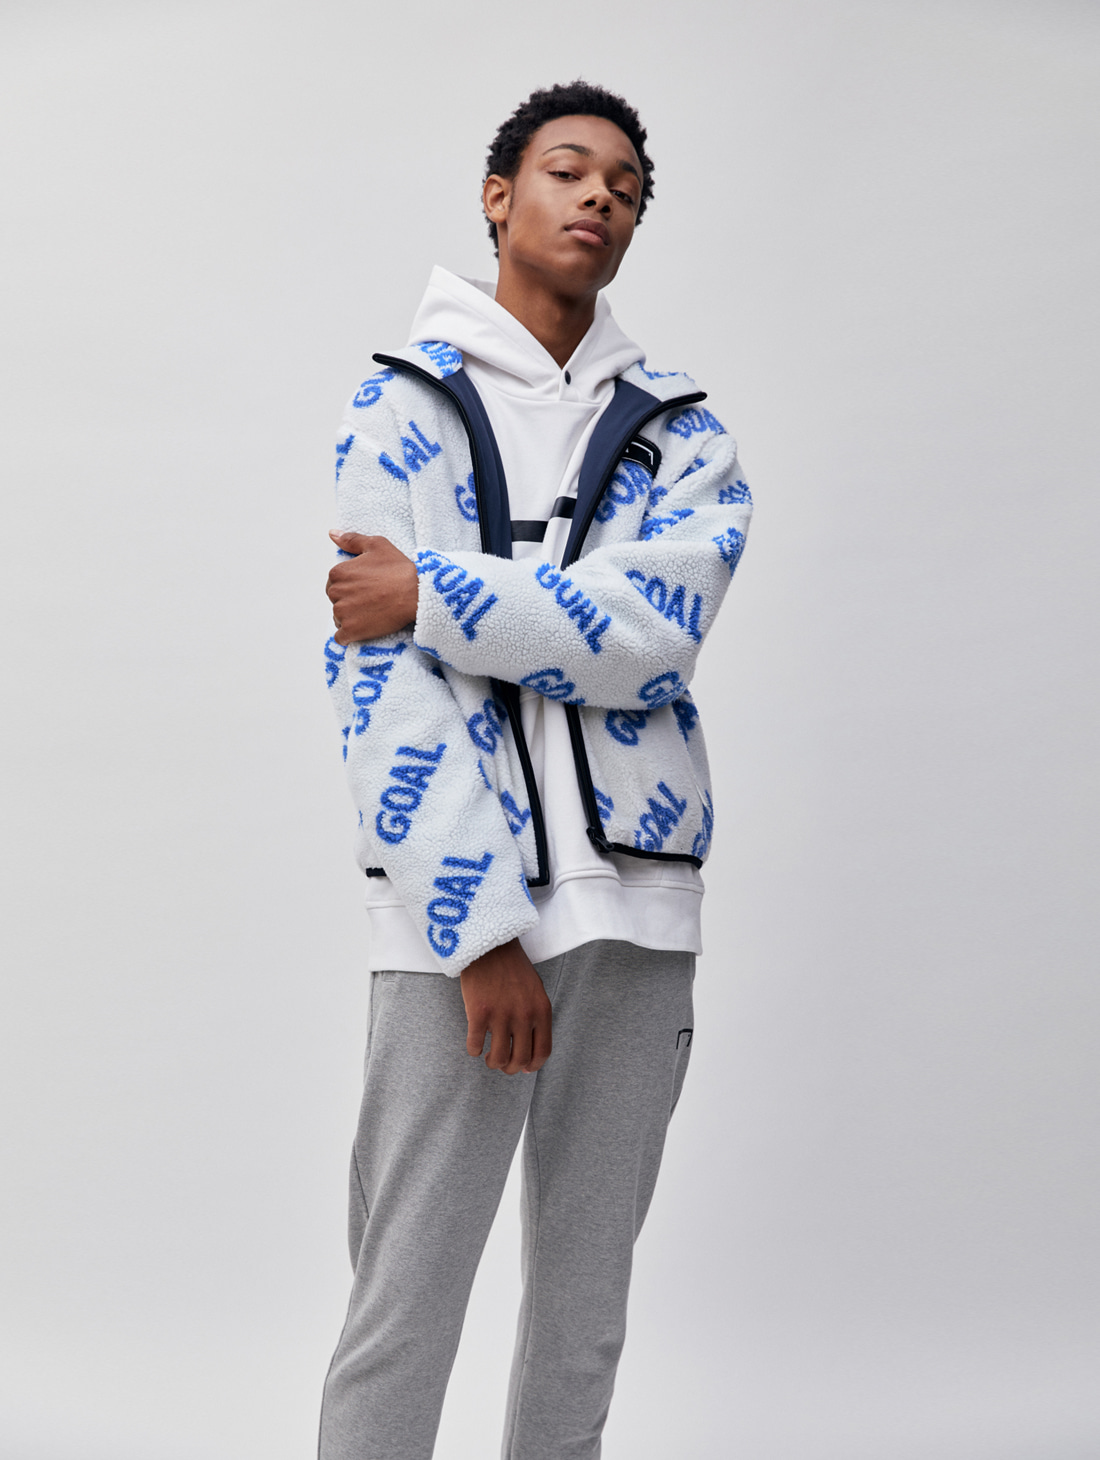 REVERSIBLE FLEECE JACKET - WHITE/NAVY - 1차 완판(2차 입고 완료)